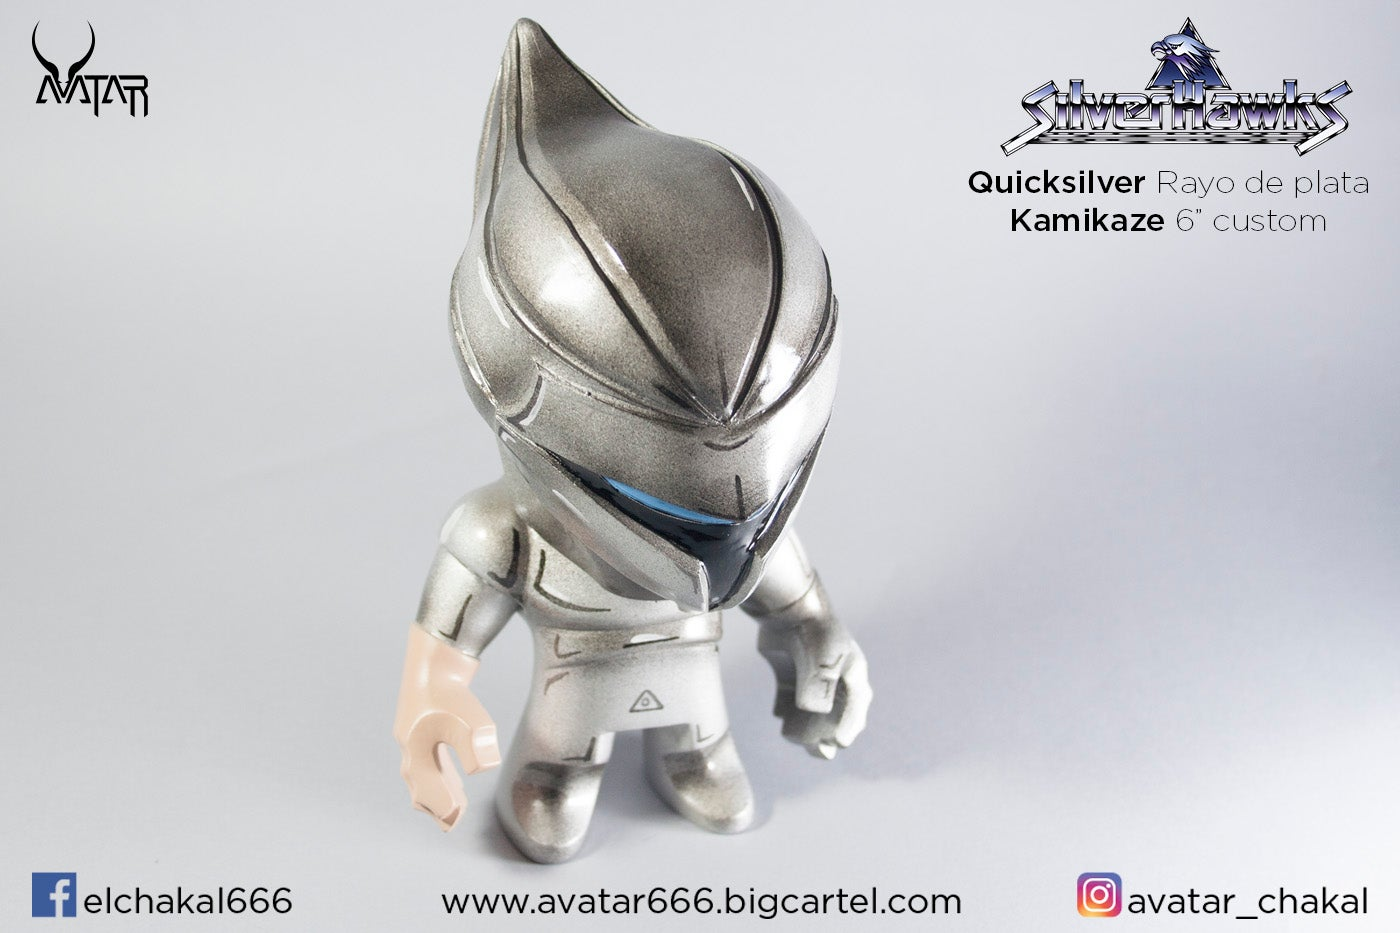 Image of QuickSilver / Rayo de plata